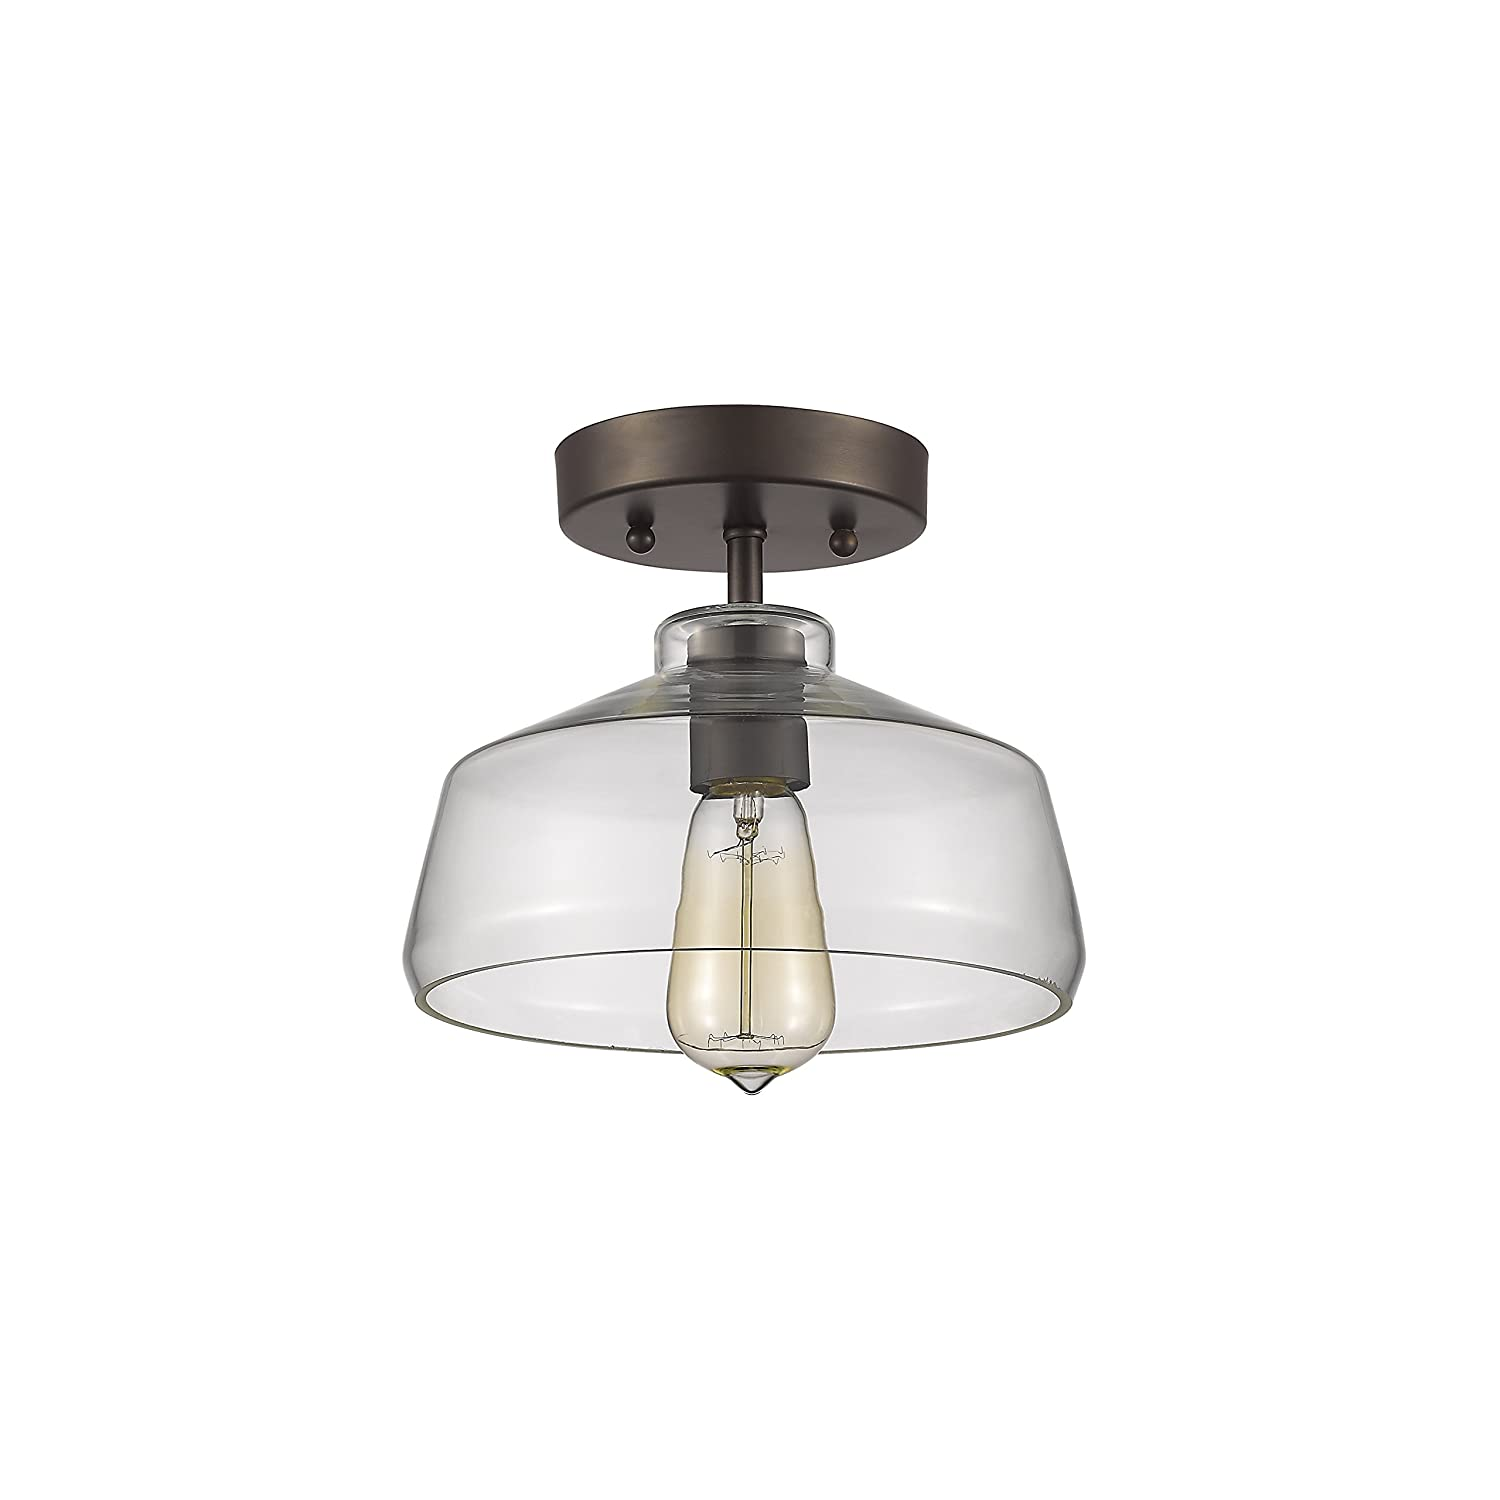 """Chloe Lighting CH854010CL09-SF1 Industrial Industrial-Style 1 Light Rubbed Bronze Semi-Flush Ceiling Fixture 9"""" Shade"""